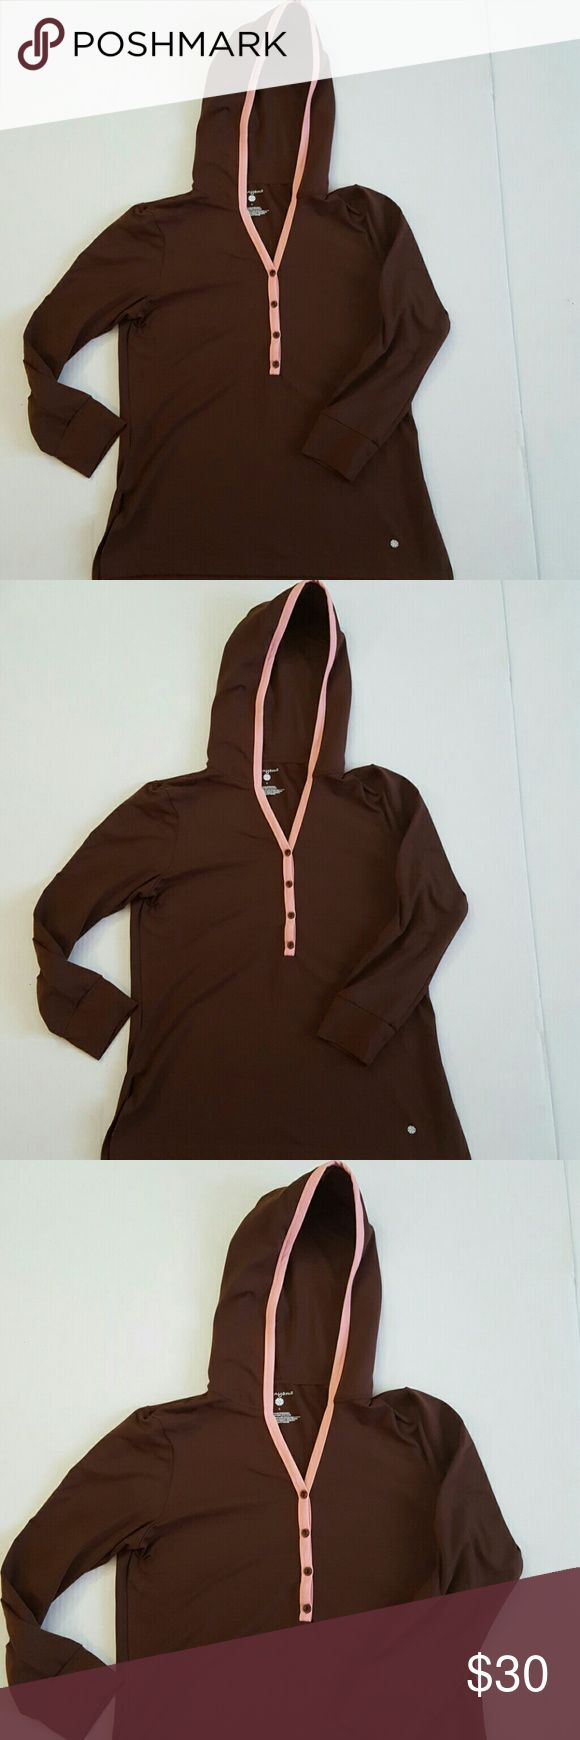 Pranyama Women's Hoodie Stretch Brown Pink Large Pranyama Women's Hoodie Stretch Brown Pink Large. Great for workout or yoga!! 92% Nylon, 8% Spandex Measurements: Armpit to armpit 22 inches across Pranyama Jackets & Coats Utility Jackets